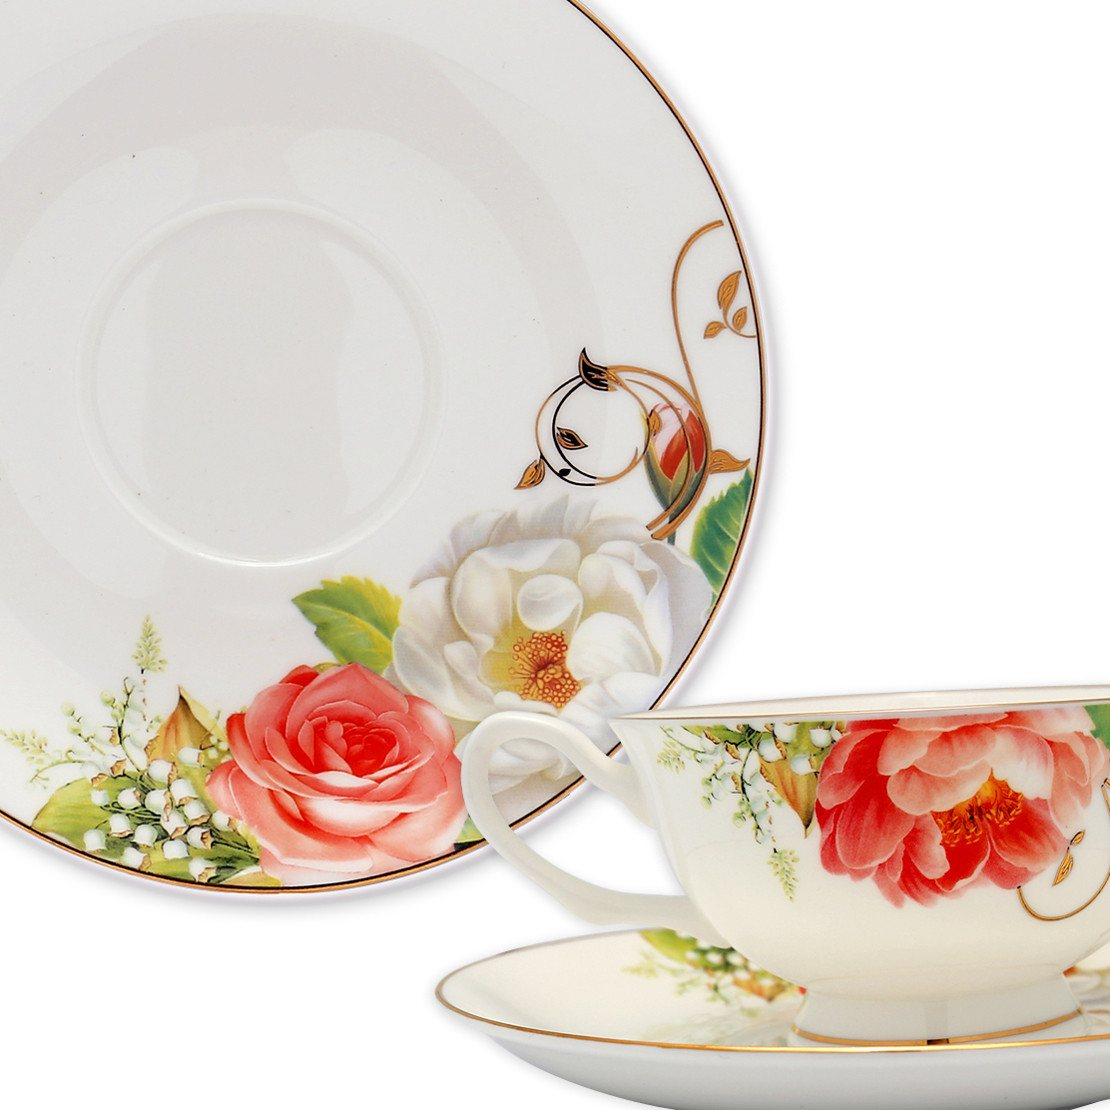 ... Dinnerwares - Bone China 24 Piece Dinnerware Set Rose Blossom And Gold Twigs Service For ...  sc 1 st  Homenique.net & Fine Bone China Dinnerware Set - 24 Piece Service for 4 - Rose Motif ...